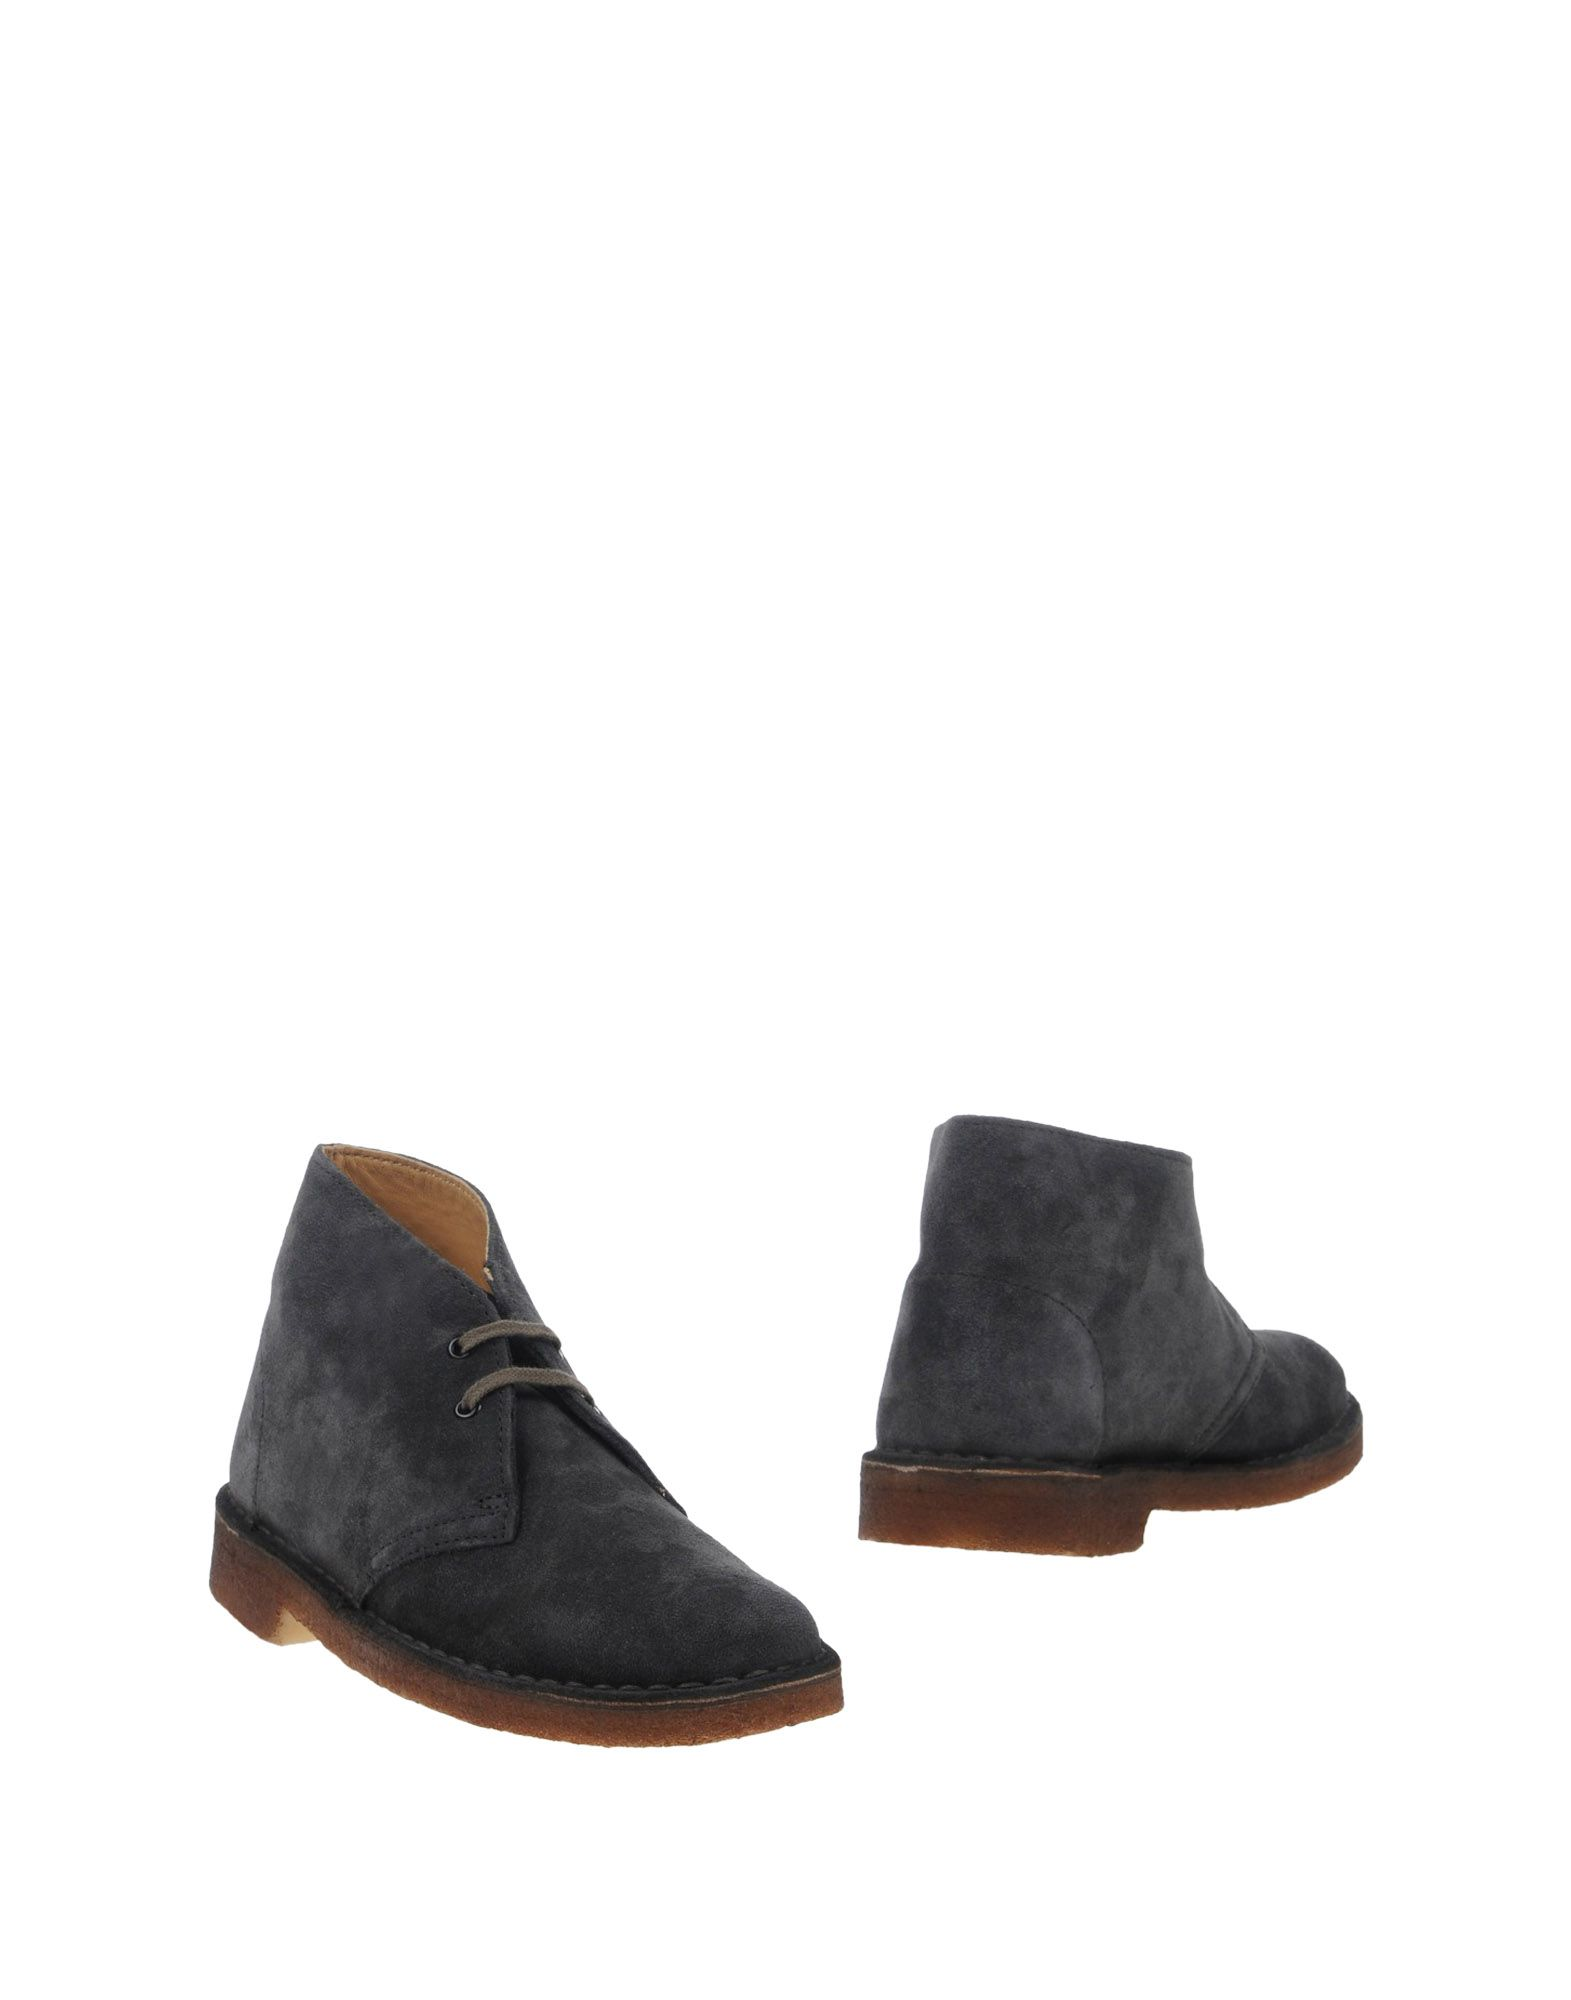 CLARKS ORIGINALS Ankle Boot in Lead